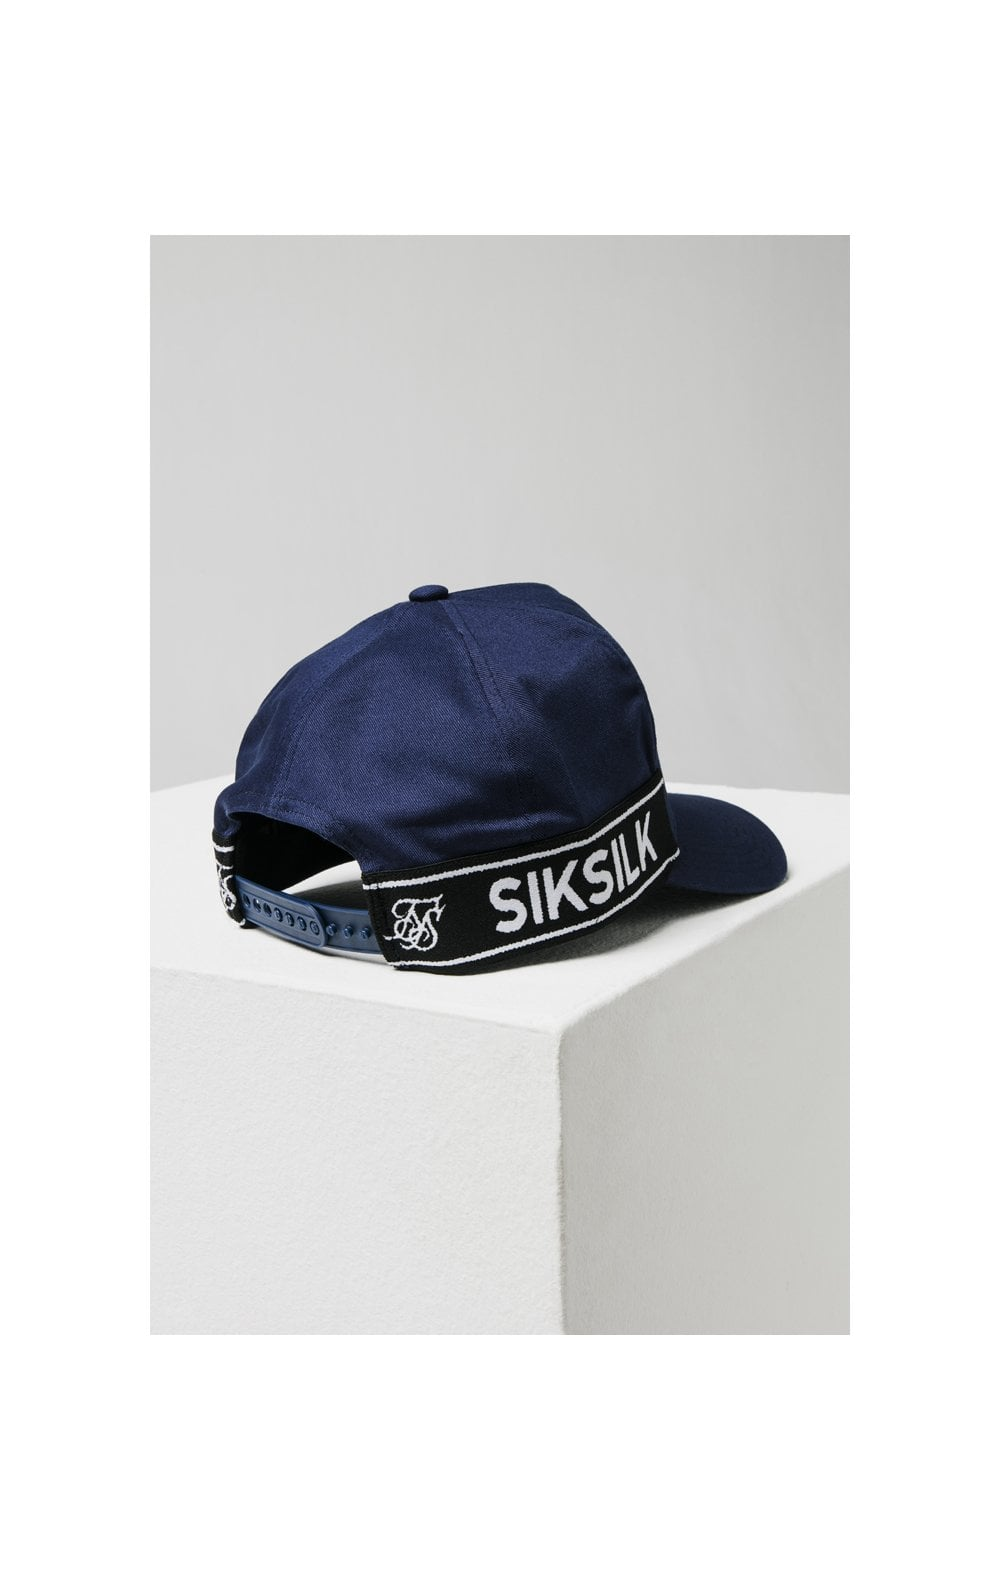 SikSilk Stretch Fit Full Trucker - Navy (6)